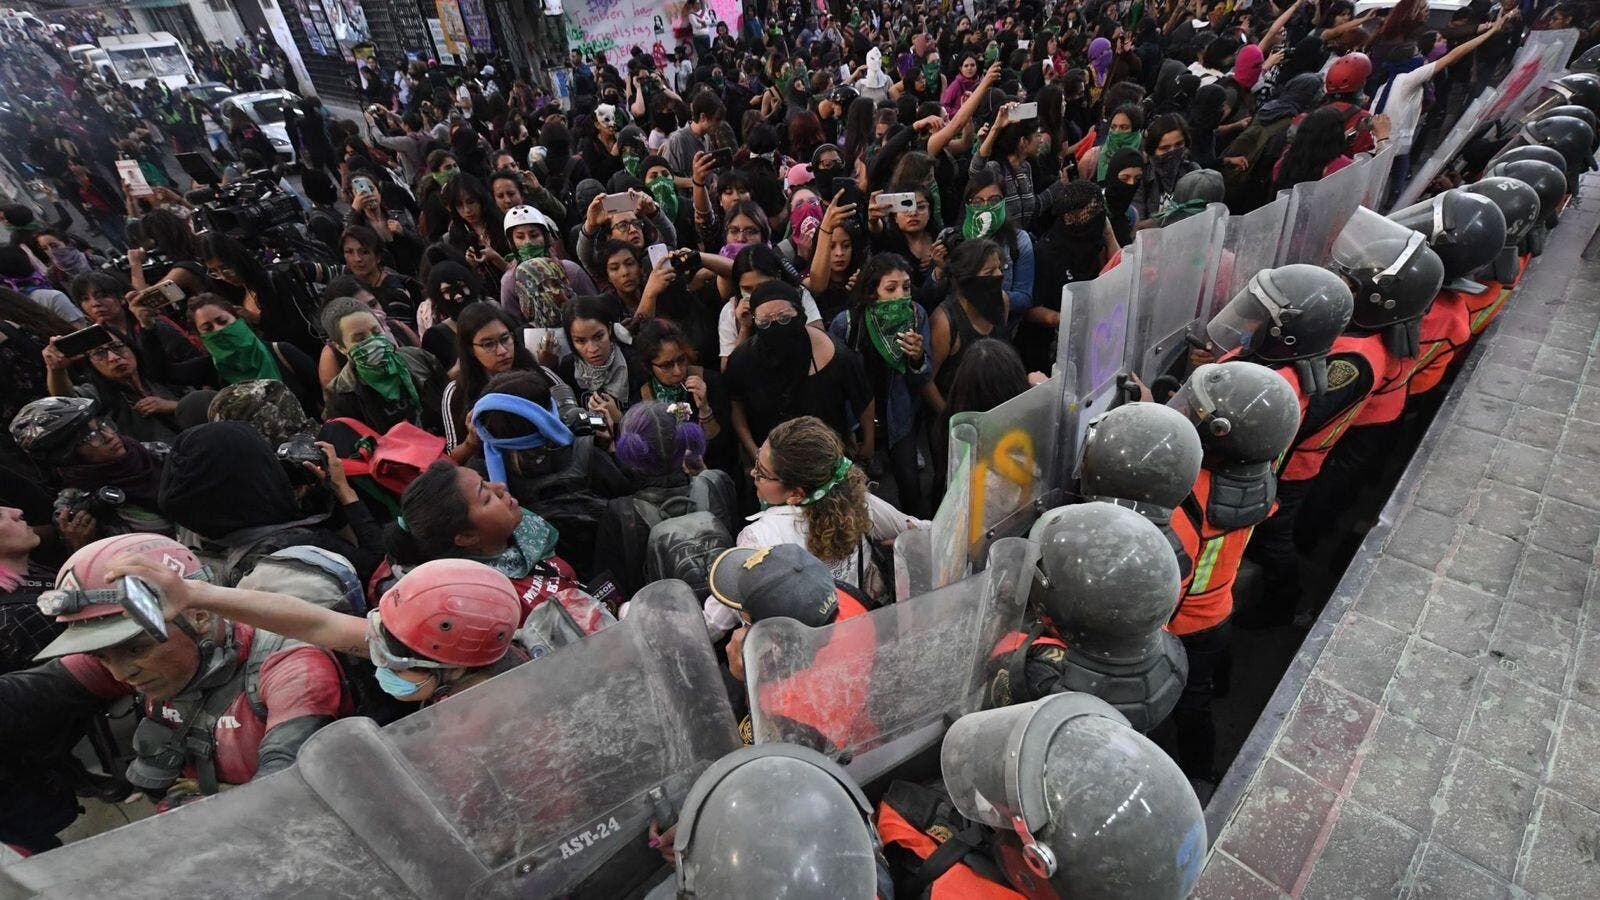 Ingrid Escamilla murder: Hundreds in Mexico protest against 'femicide state'